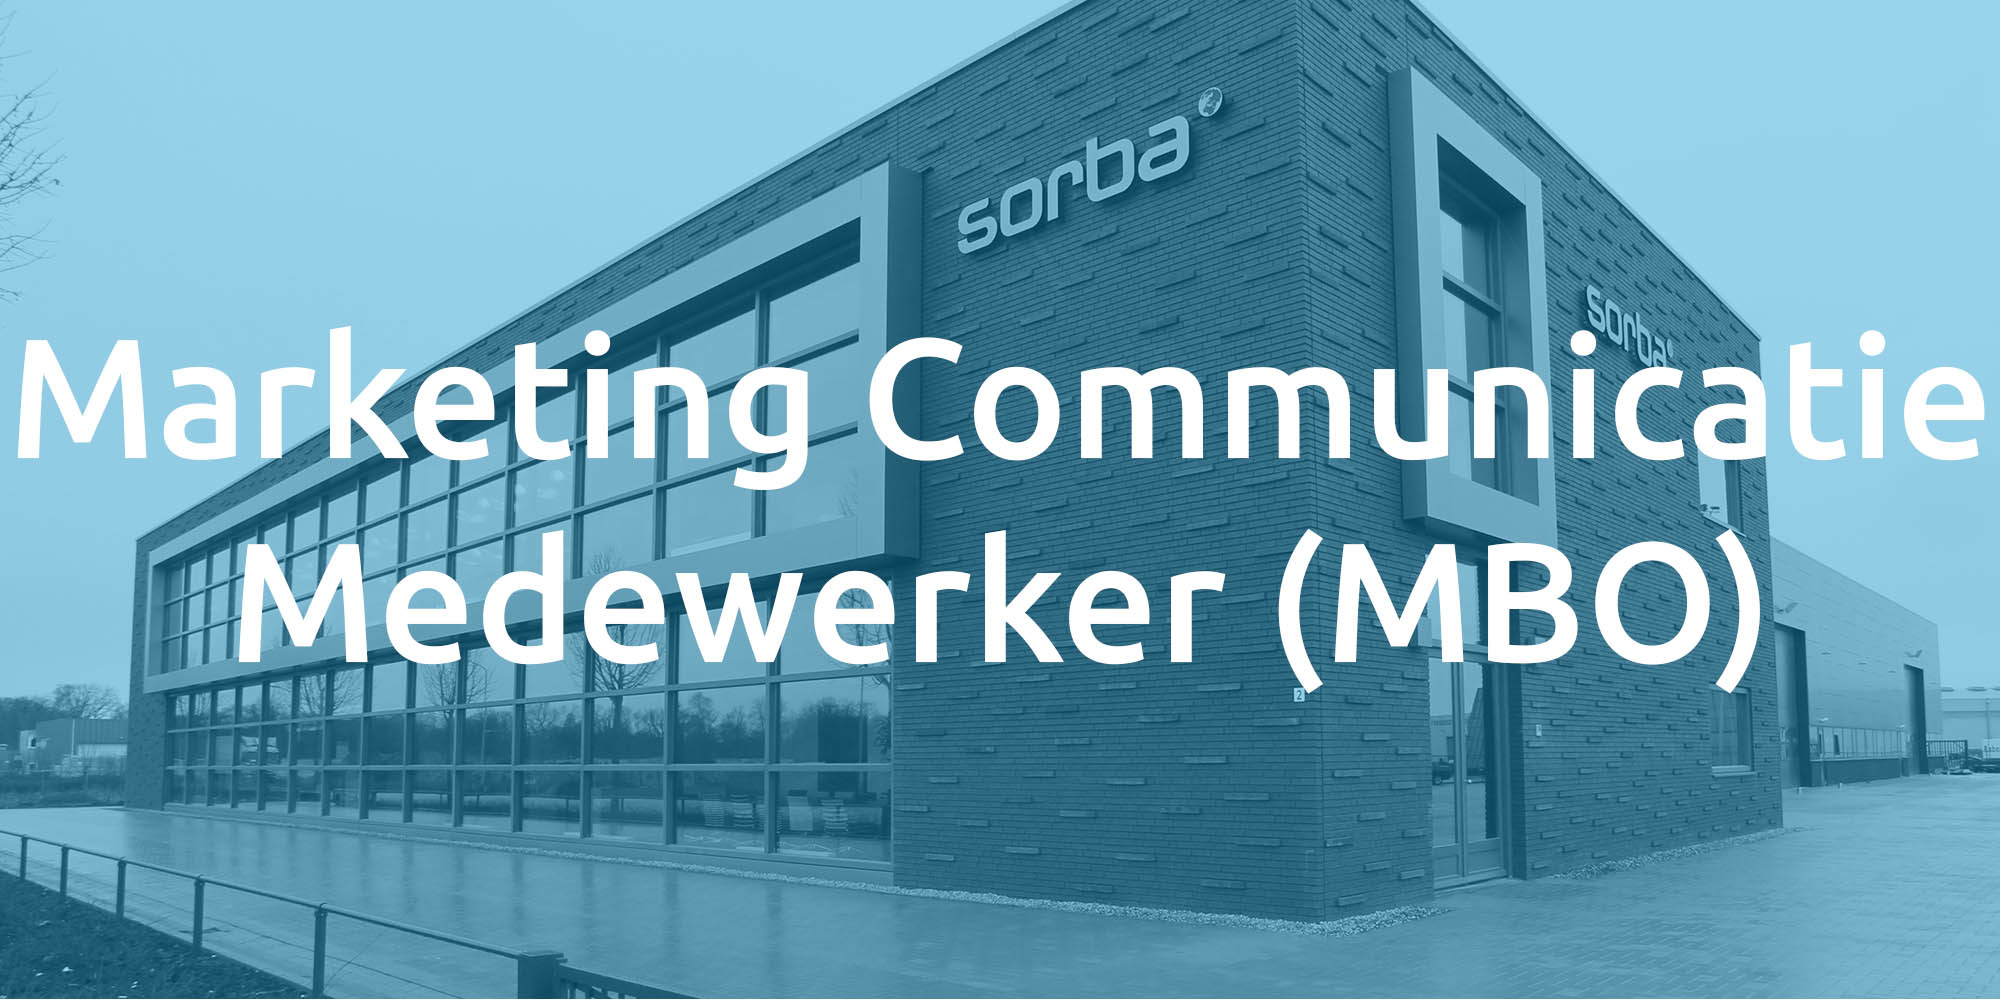 Vacature Marketing Communicatie Sorba